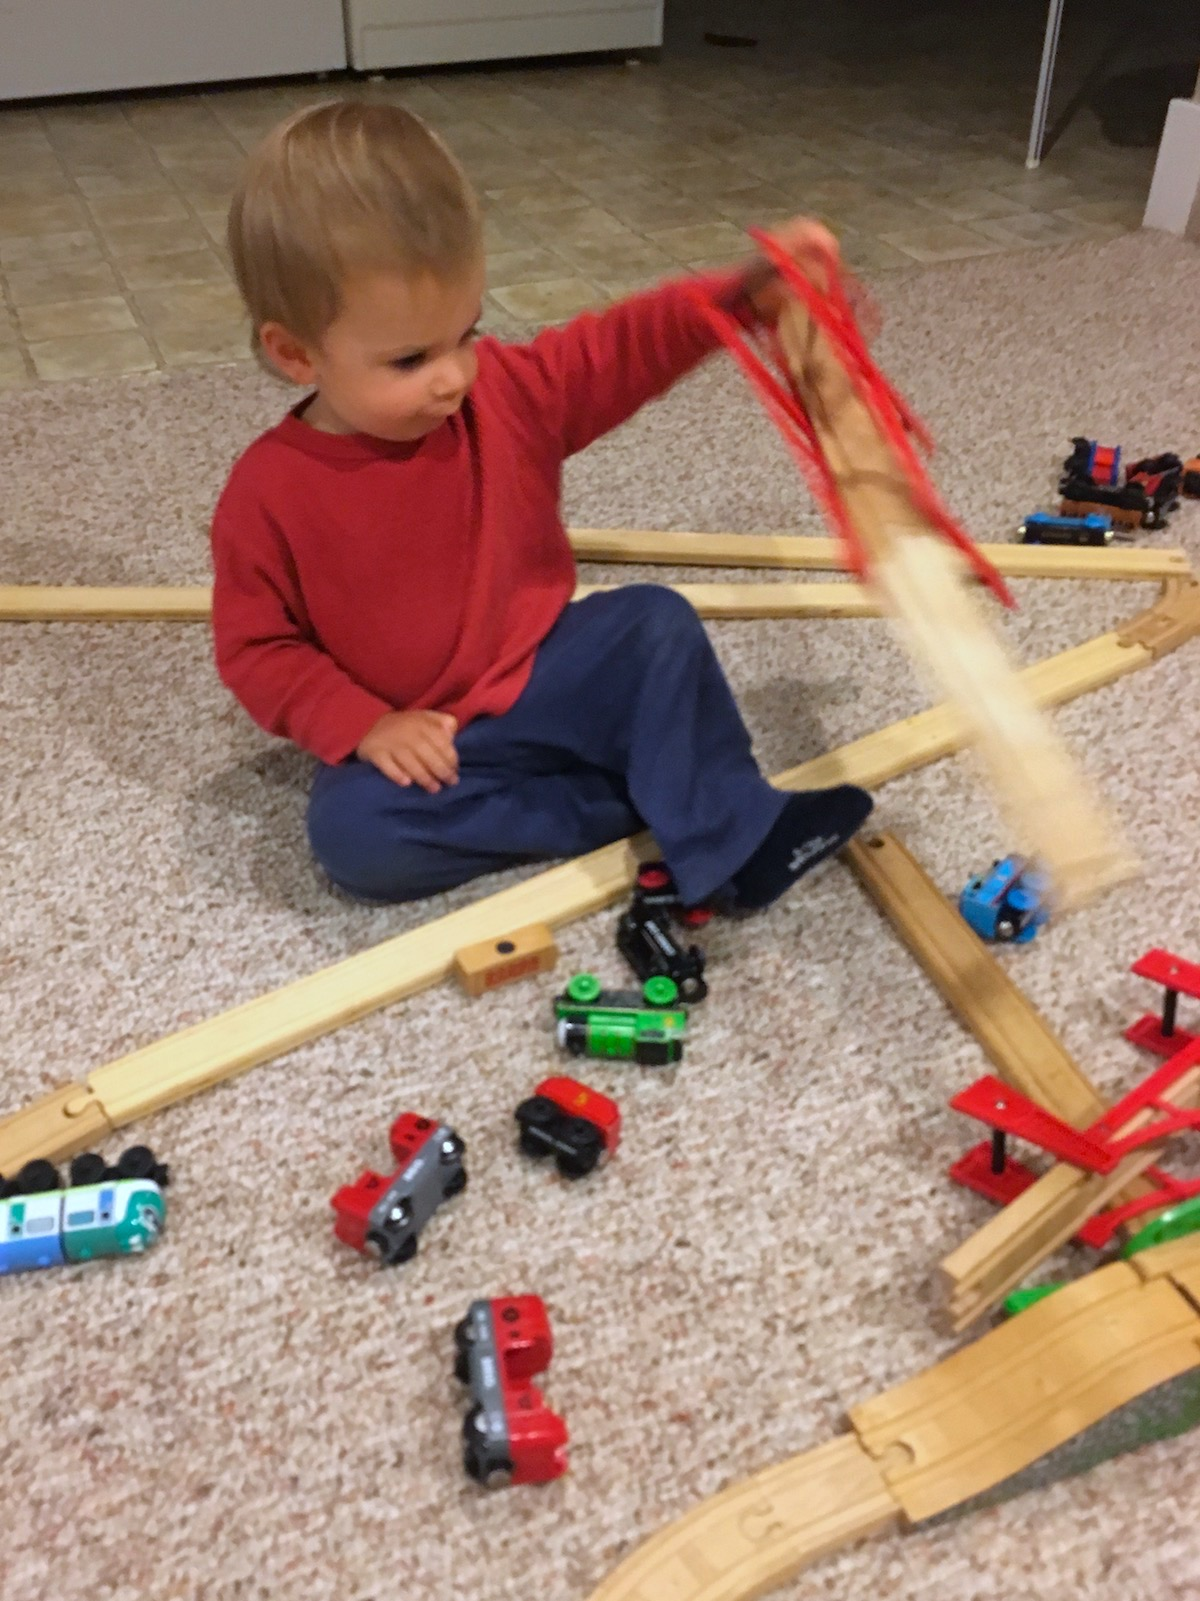 toy-rotation-train-track-being-wrecked